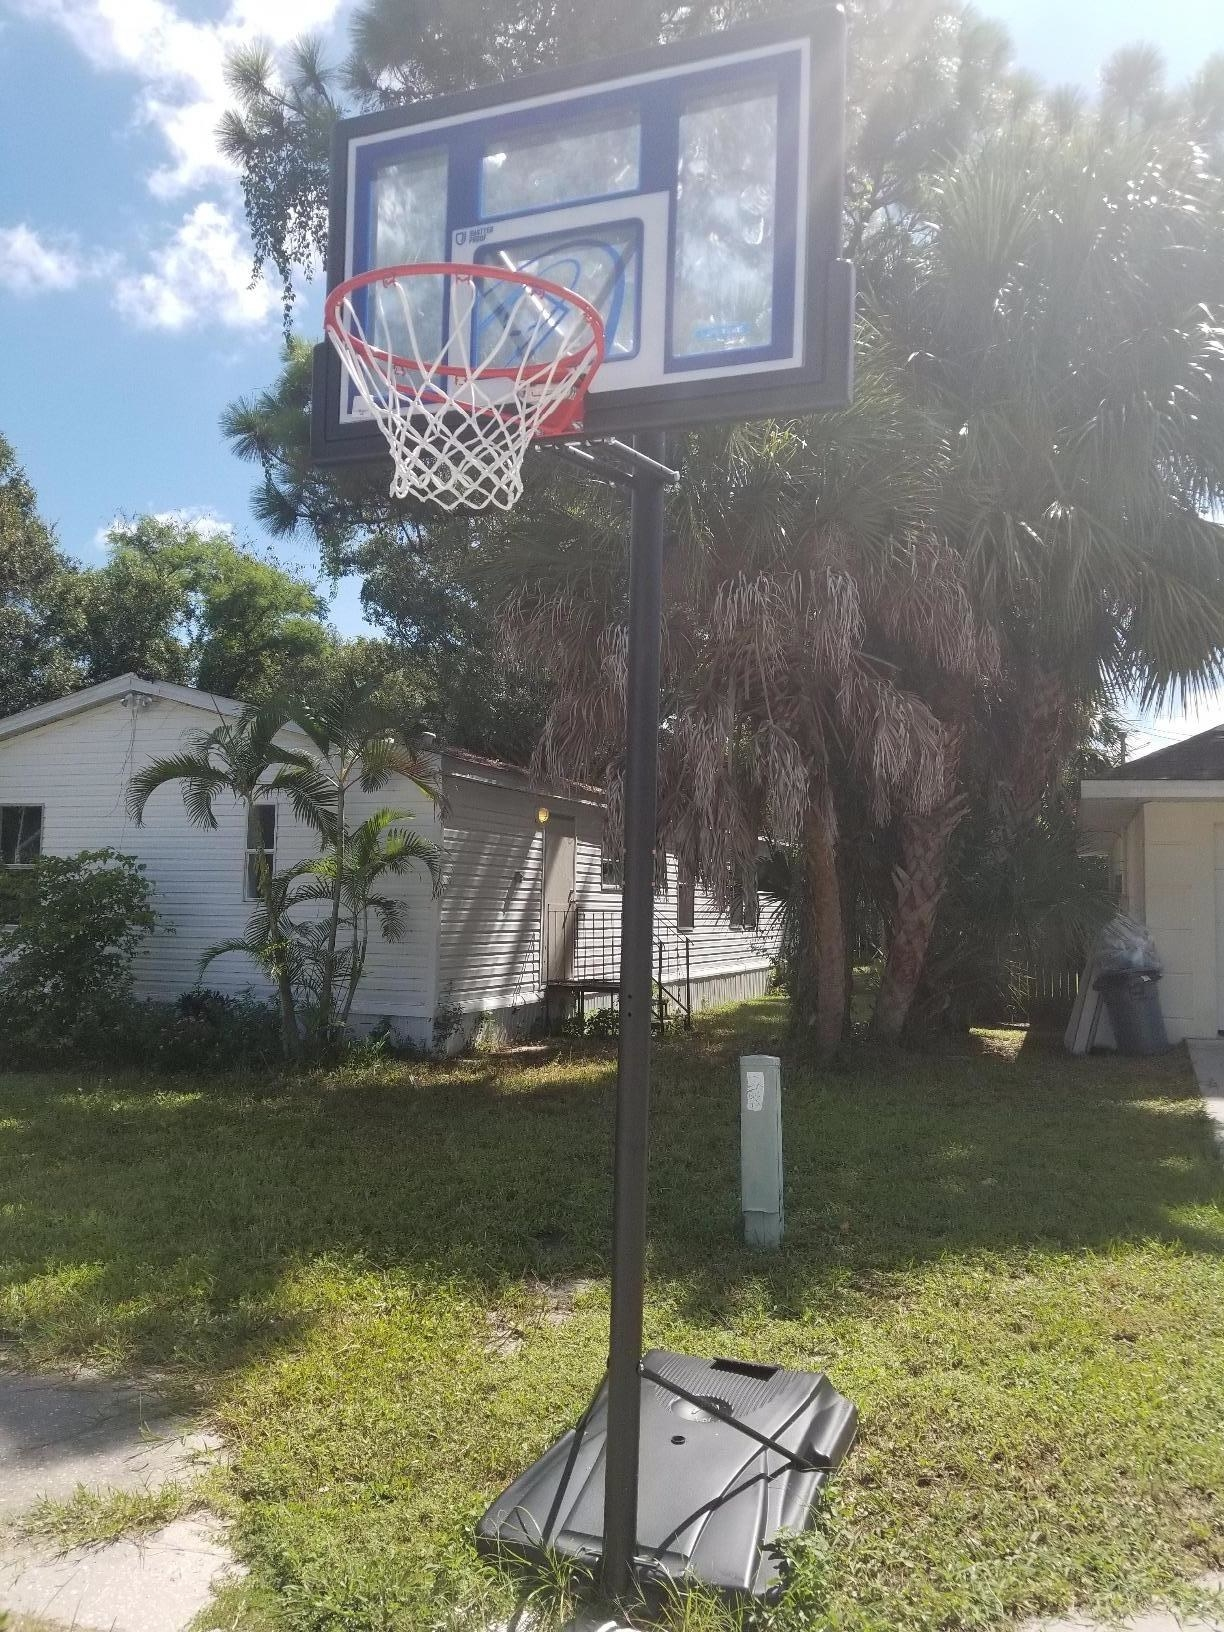 An outdoor basketball hoop with black base and pole, red rim with white netting, and clear blackboard with blue and black accents